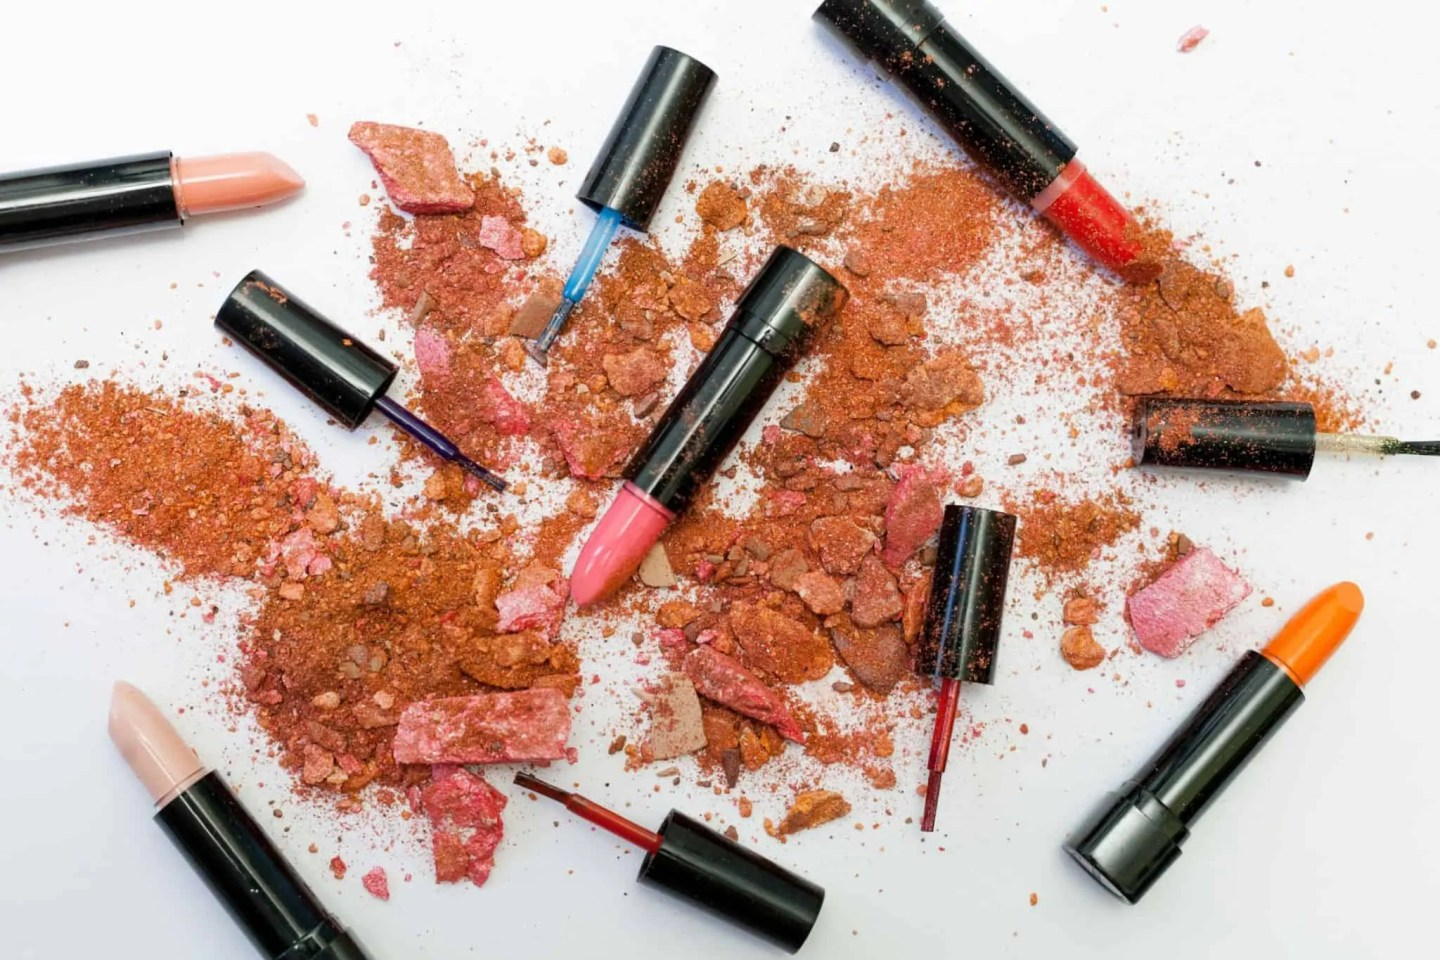 February's best free makeup samples and beauty goodies